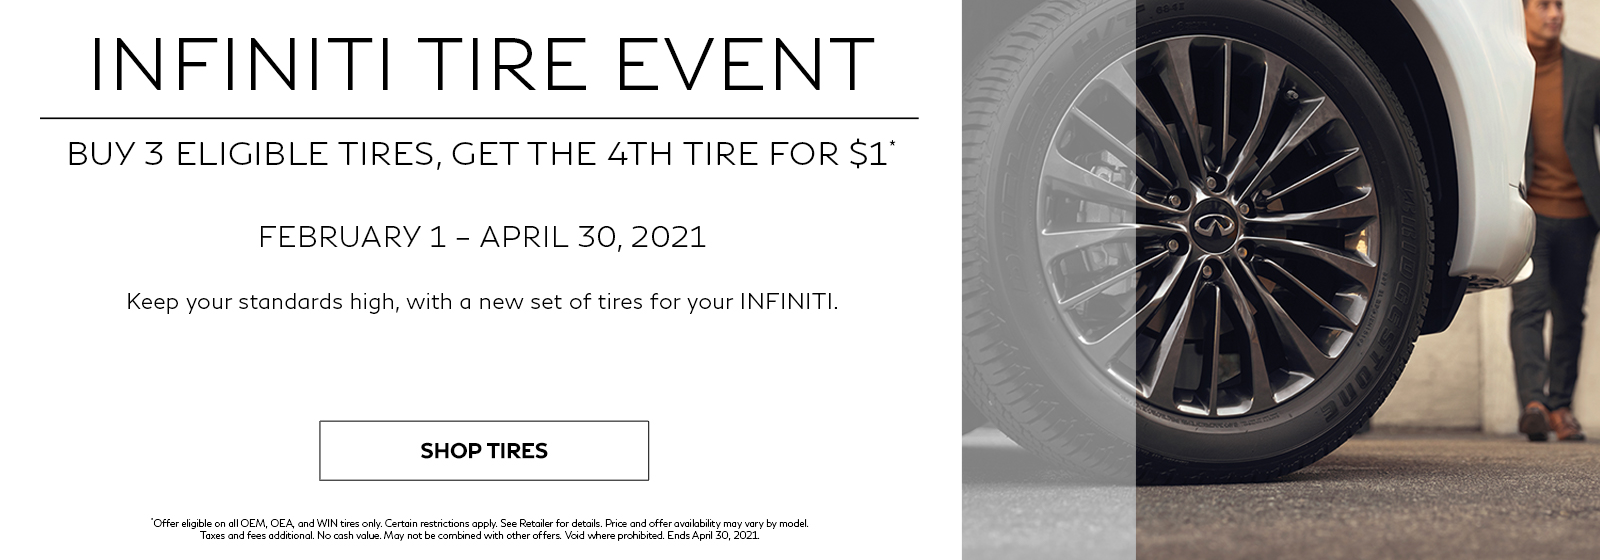 INFINITI Tire Event. Buy 3 eligible tires, get the 4th tire for $1. February 1 – April 30, 2021. Keep your standards high with a new set of tires for your INFINITI. Click to shop tires.